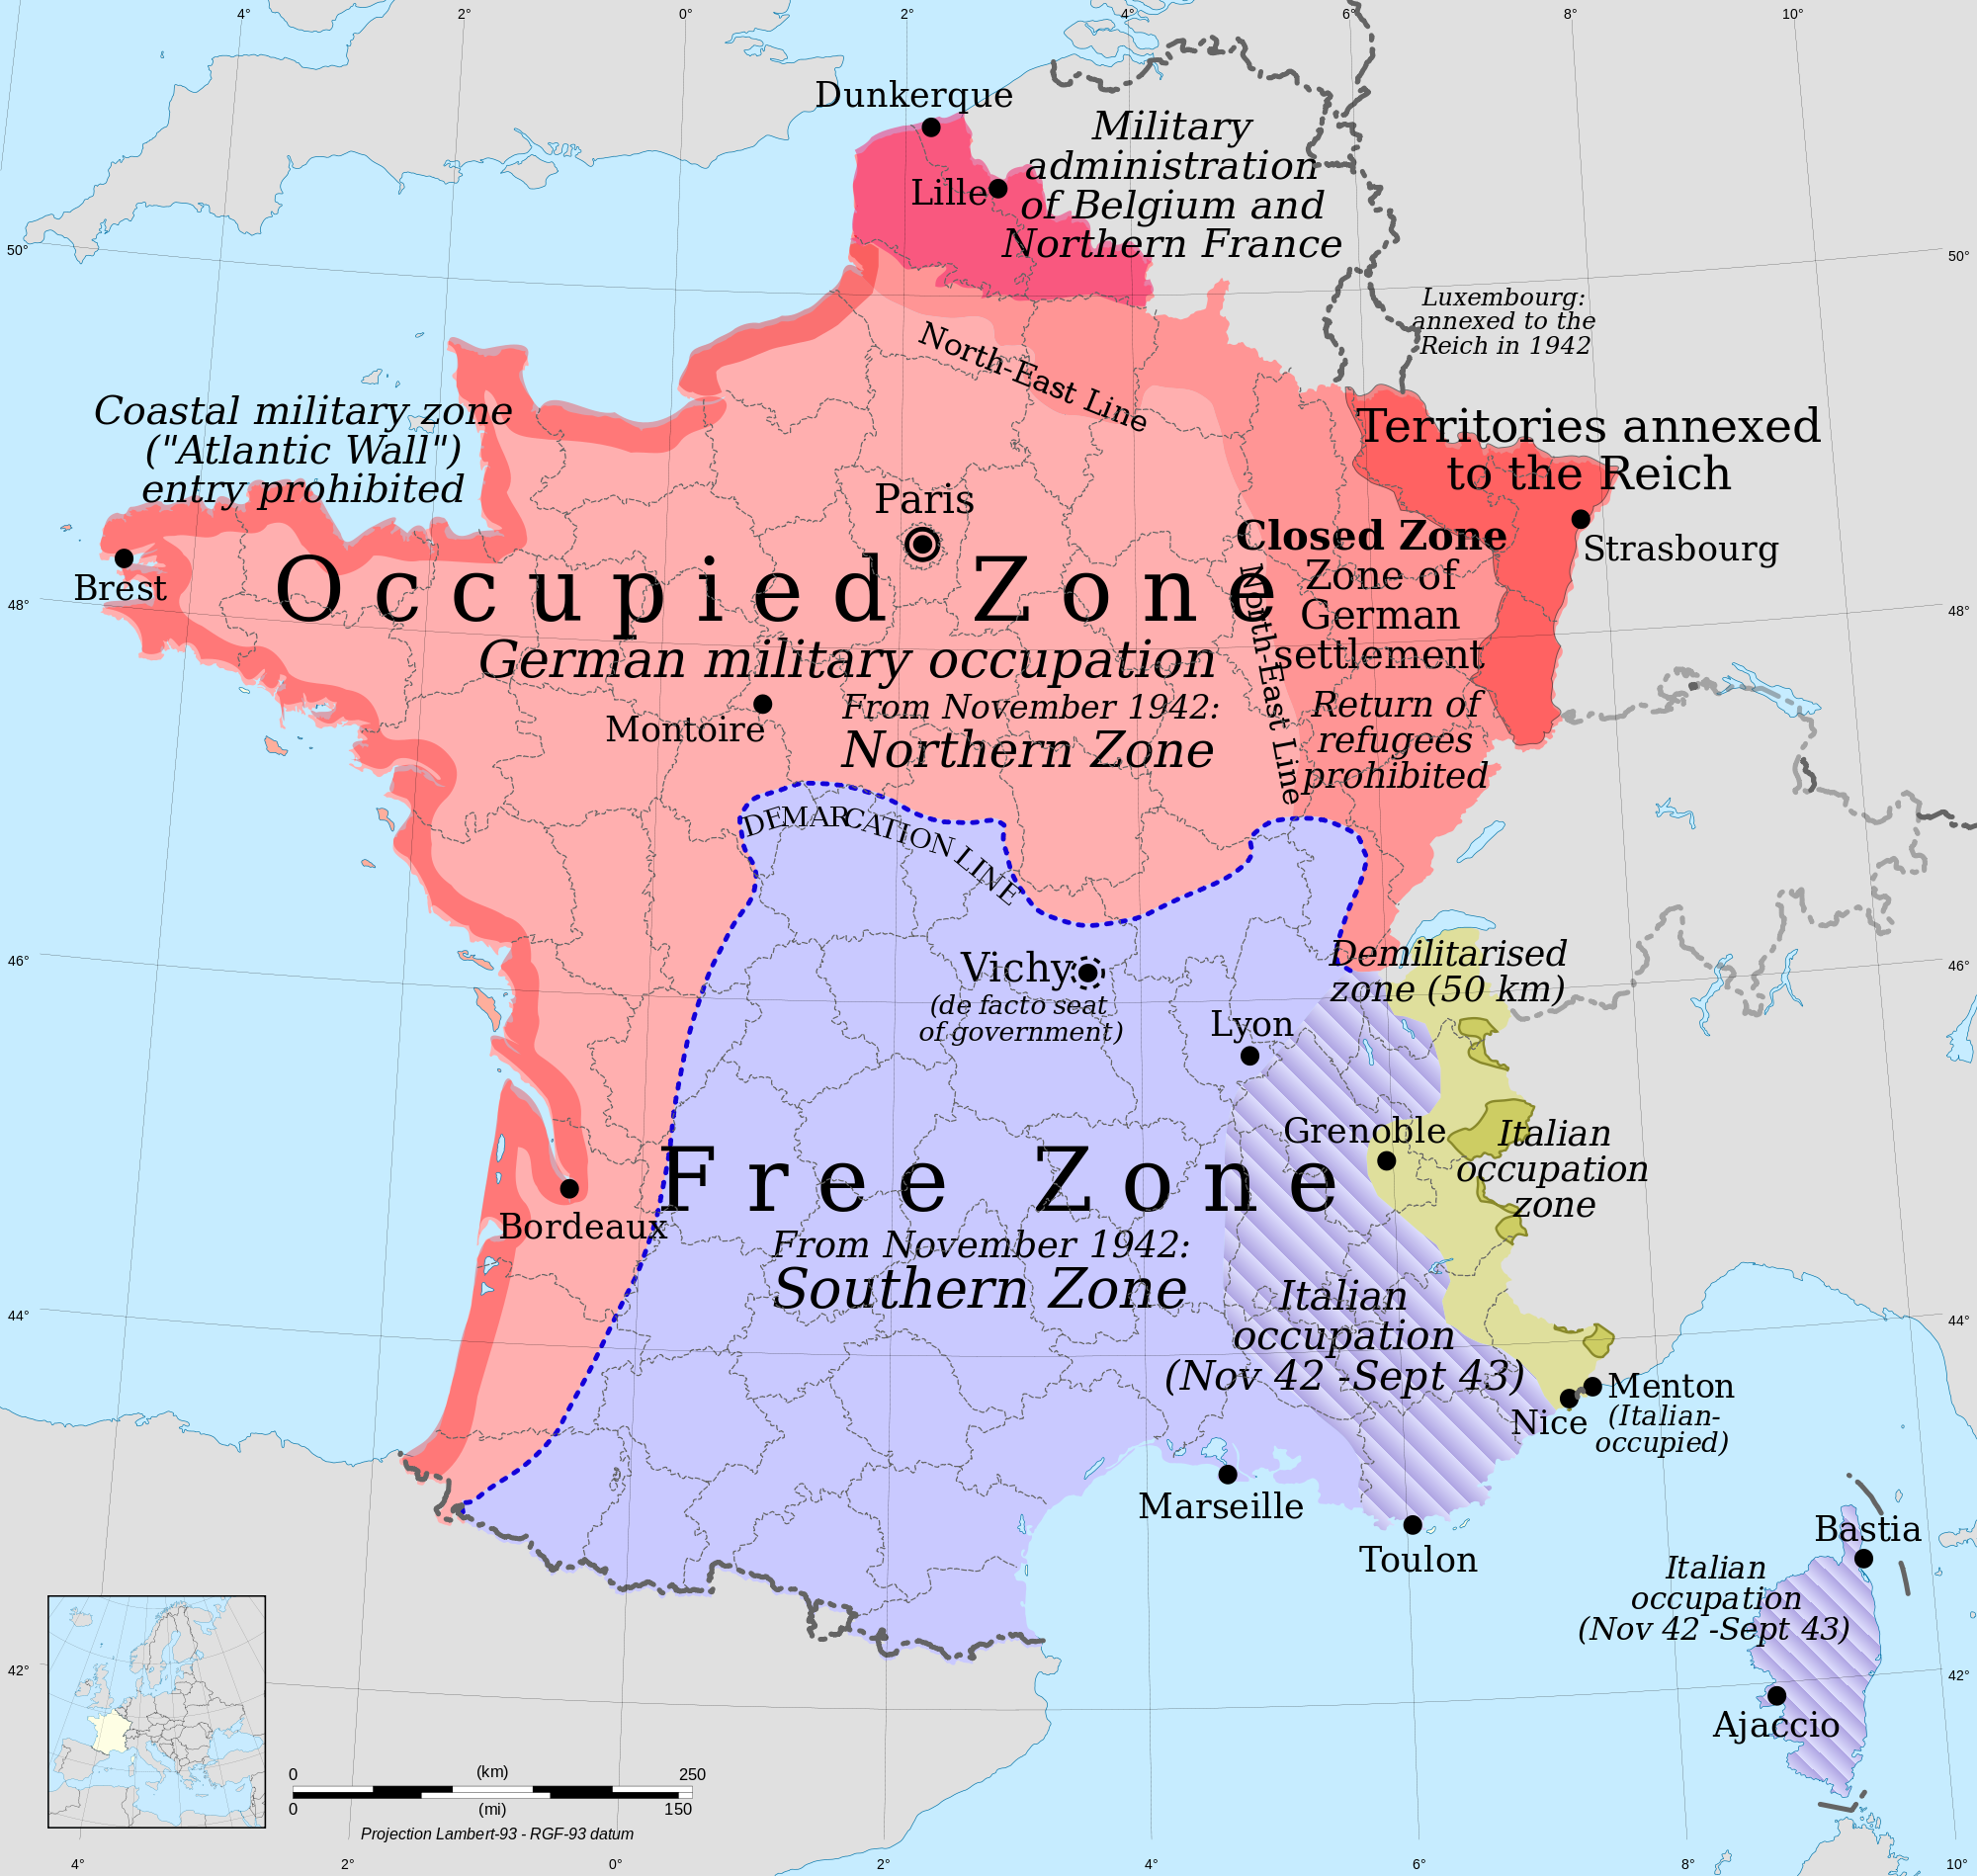 Italian occupation of France Wikipedia, the free